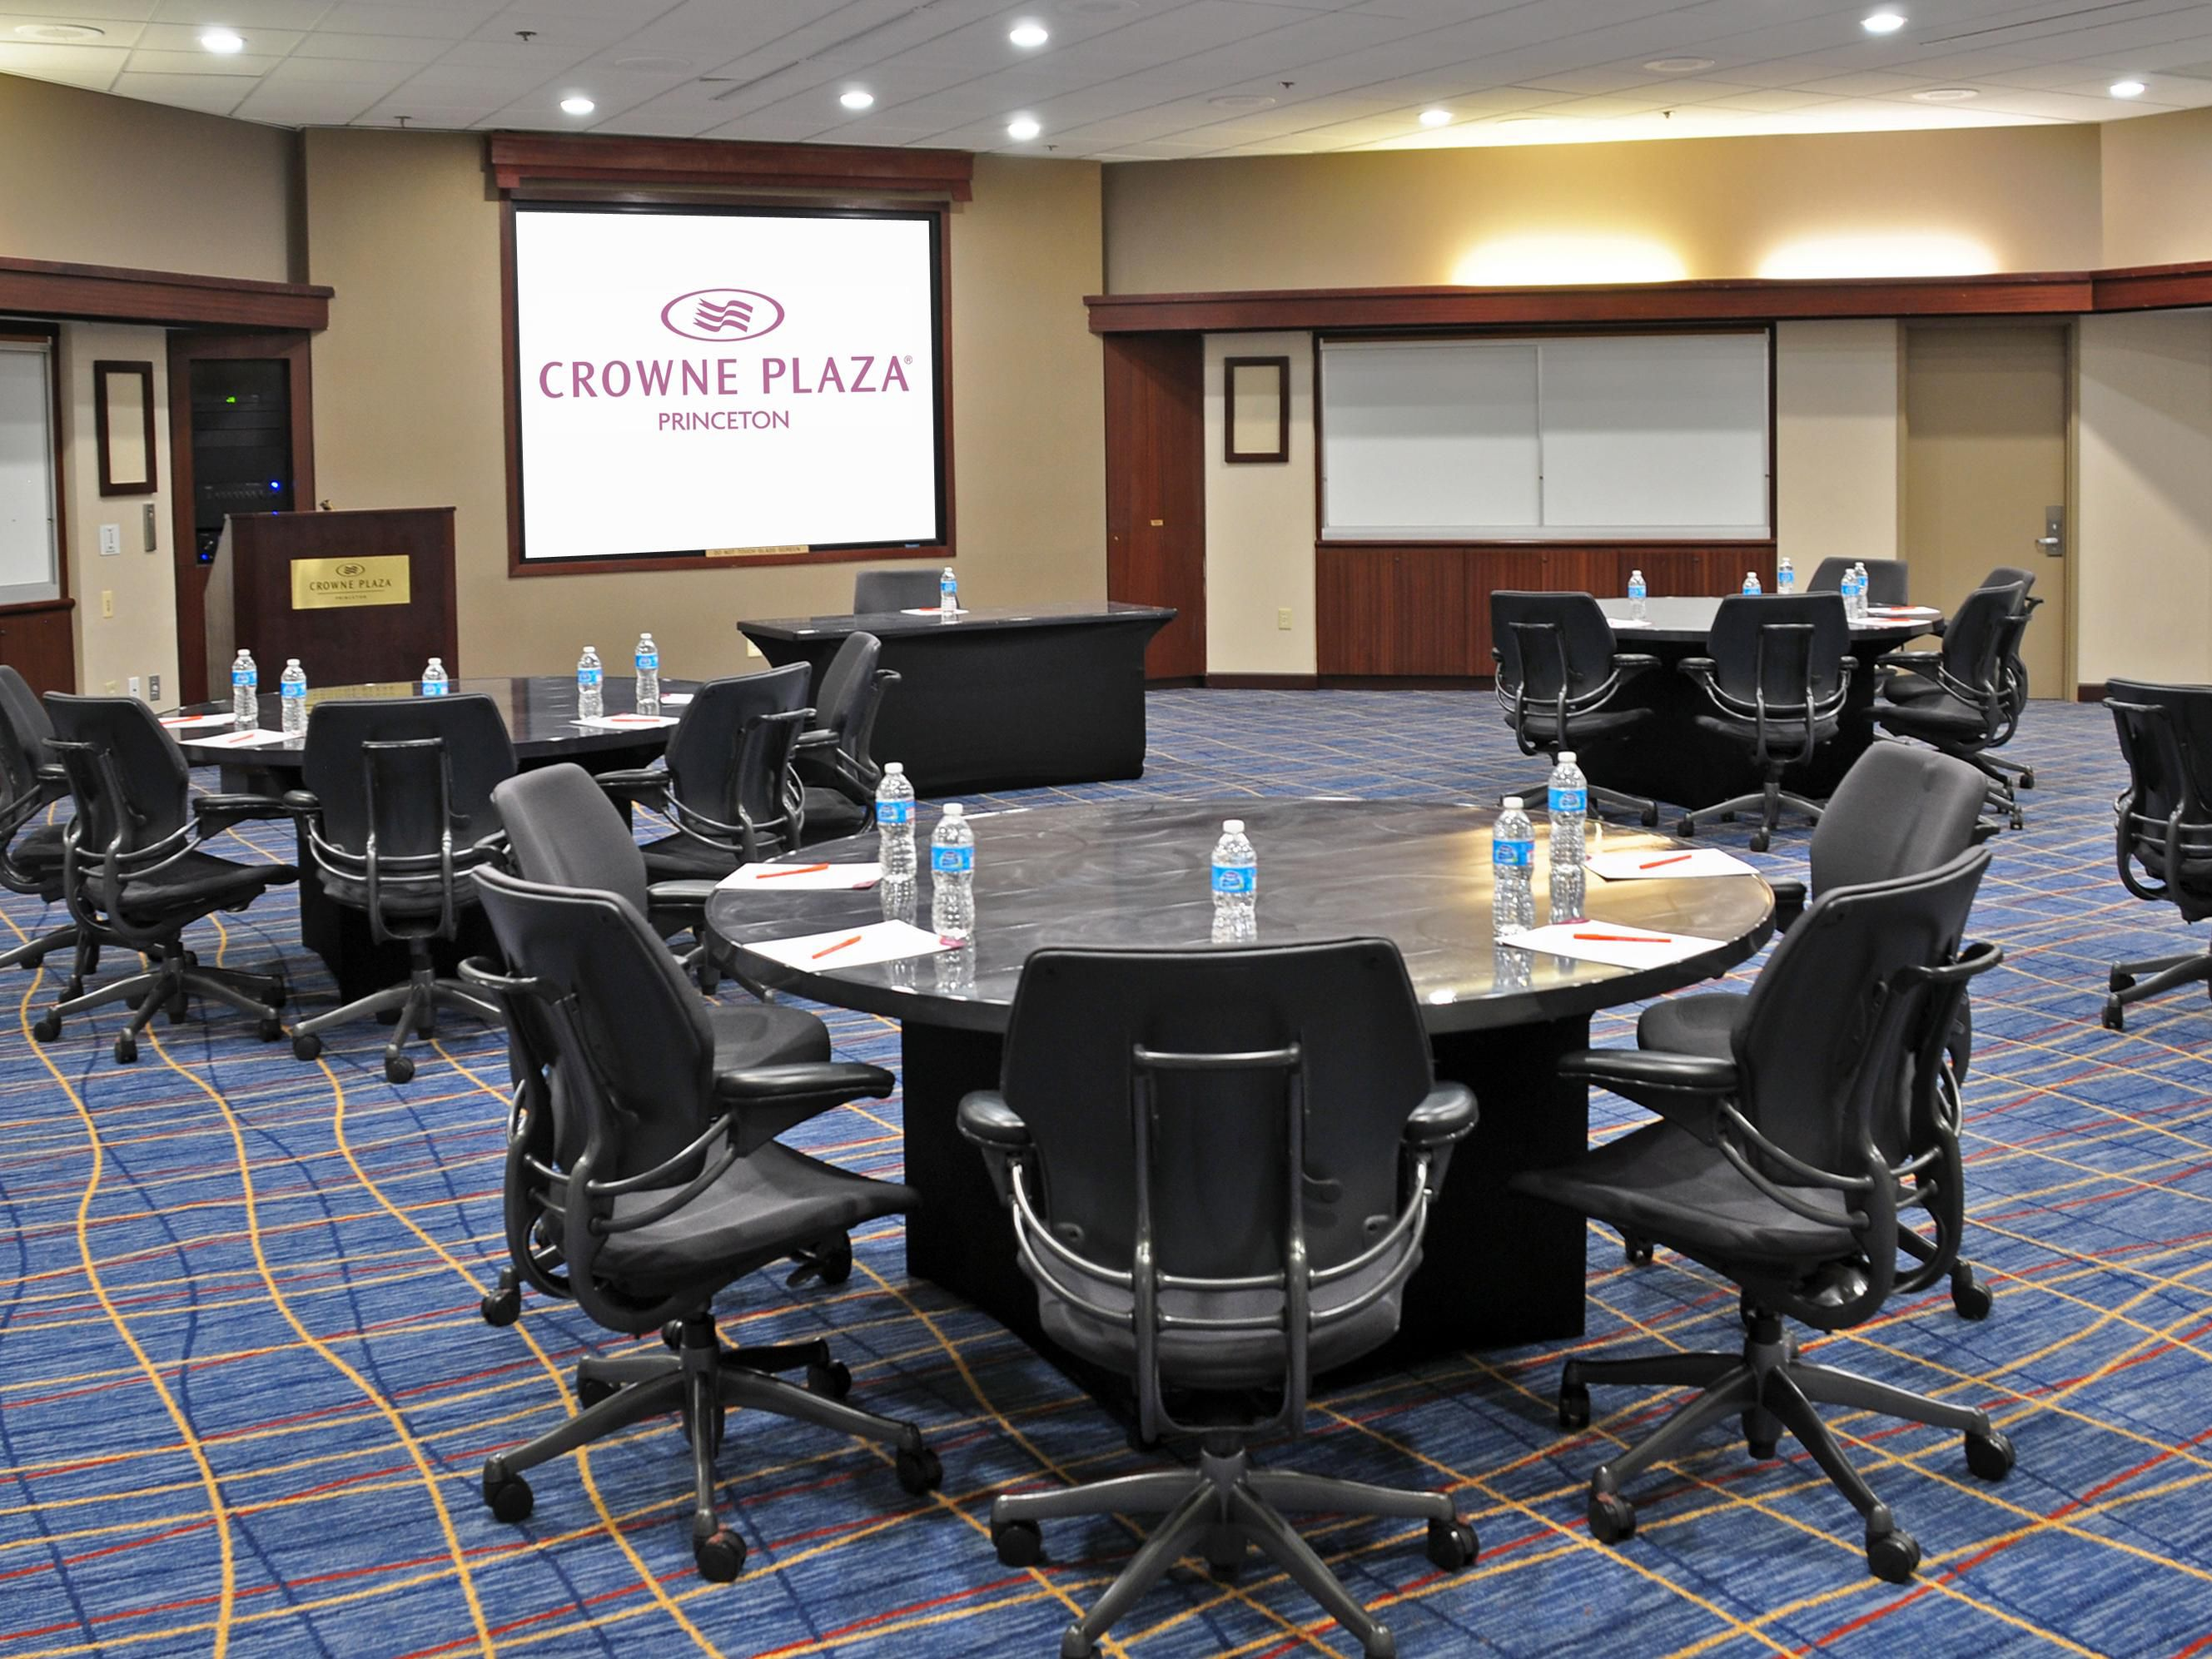 crowne plaza princeton hotel meeting rooms for rent